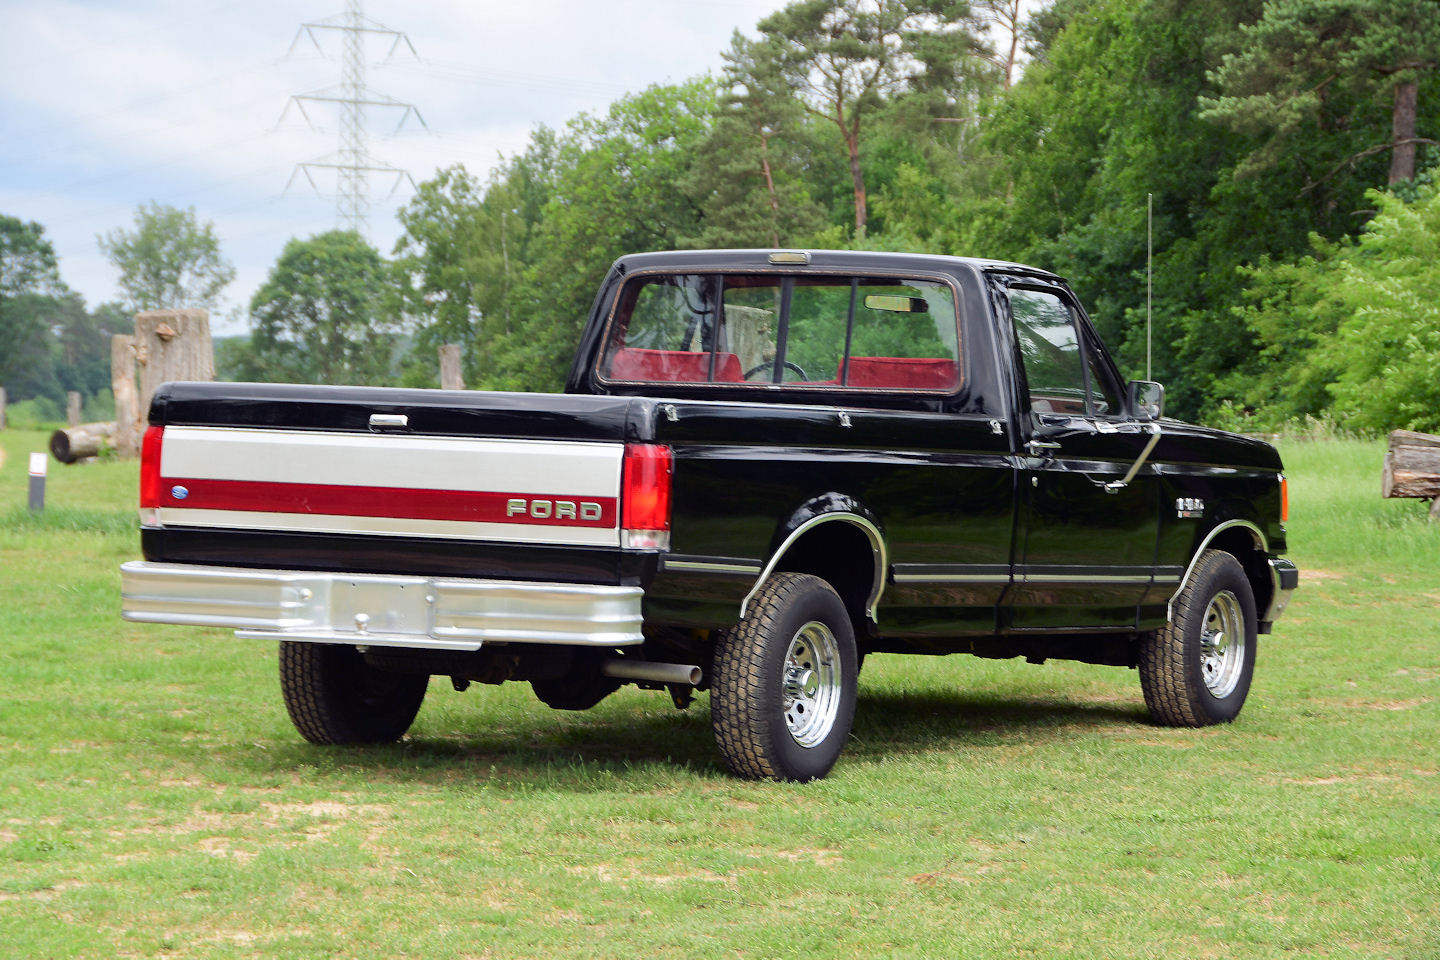 The big 4 9 liter straight six is powerful and smooth it has also an automatic transmission a great classic truck that looks so nice yes this car has